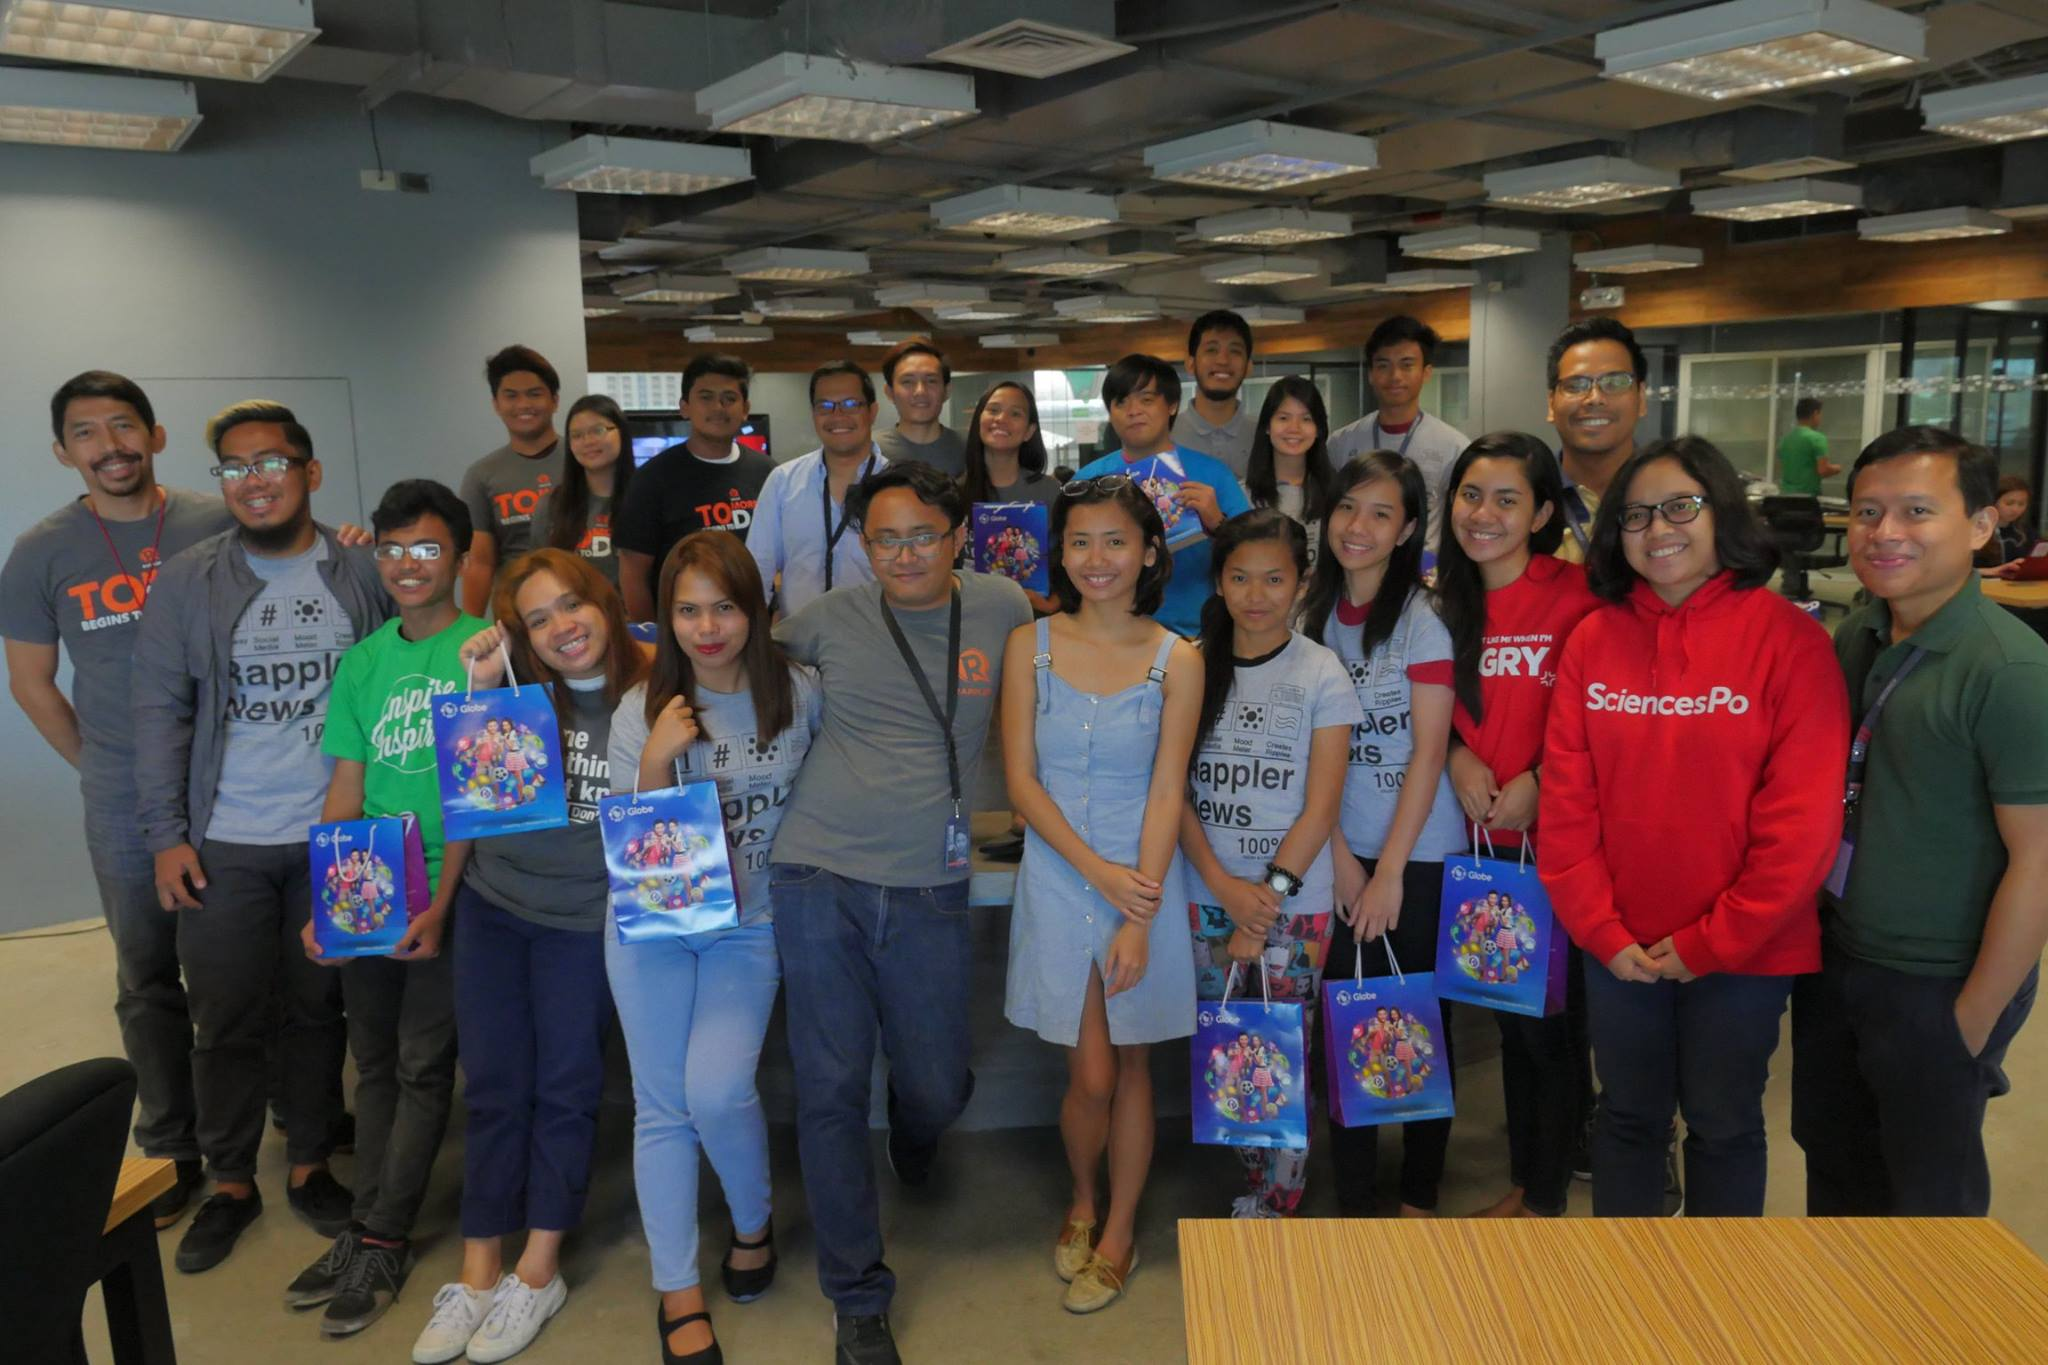 NATIONWIDE COVERAGE. Rappler's 20 core Movers with the MovePH team pose for a photo after the 3-day training. Photo from Rappler